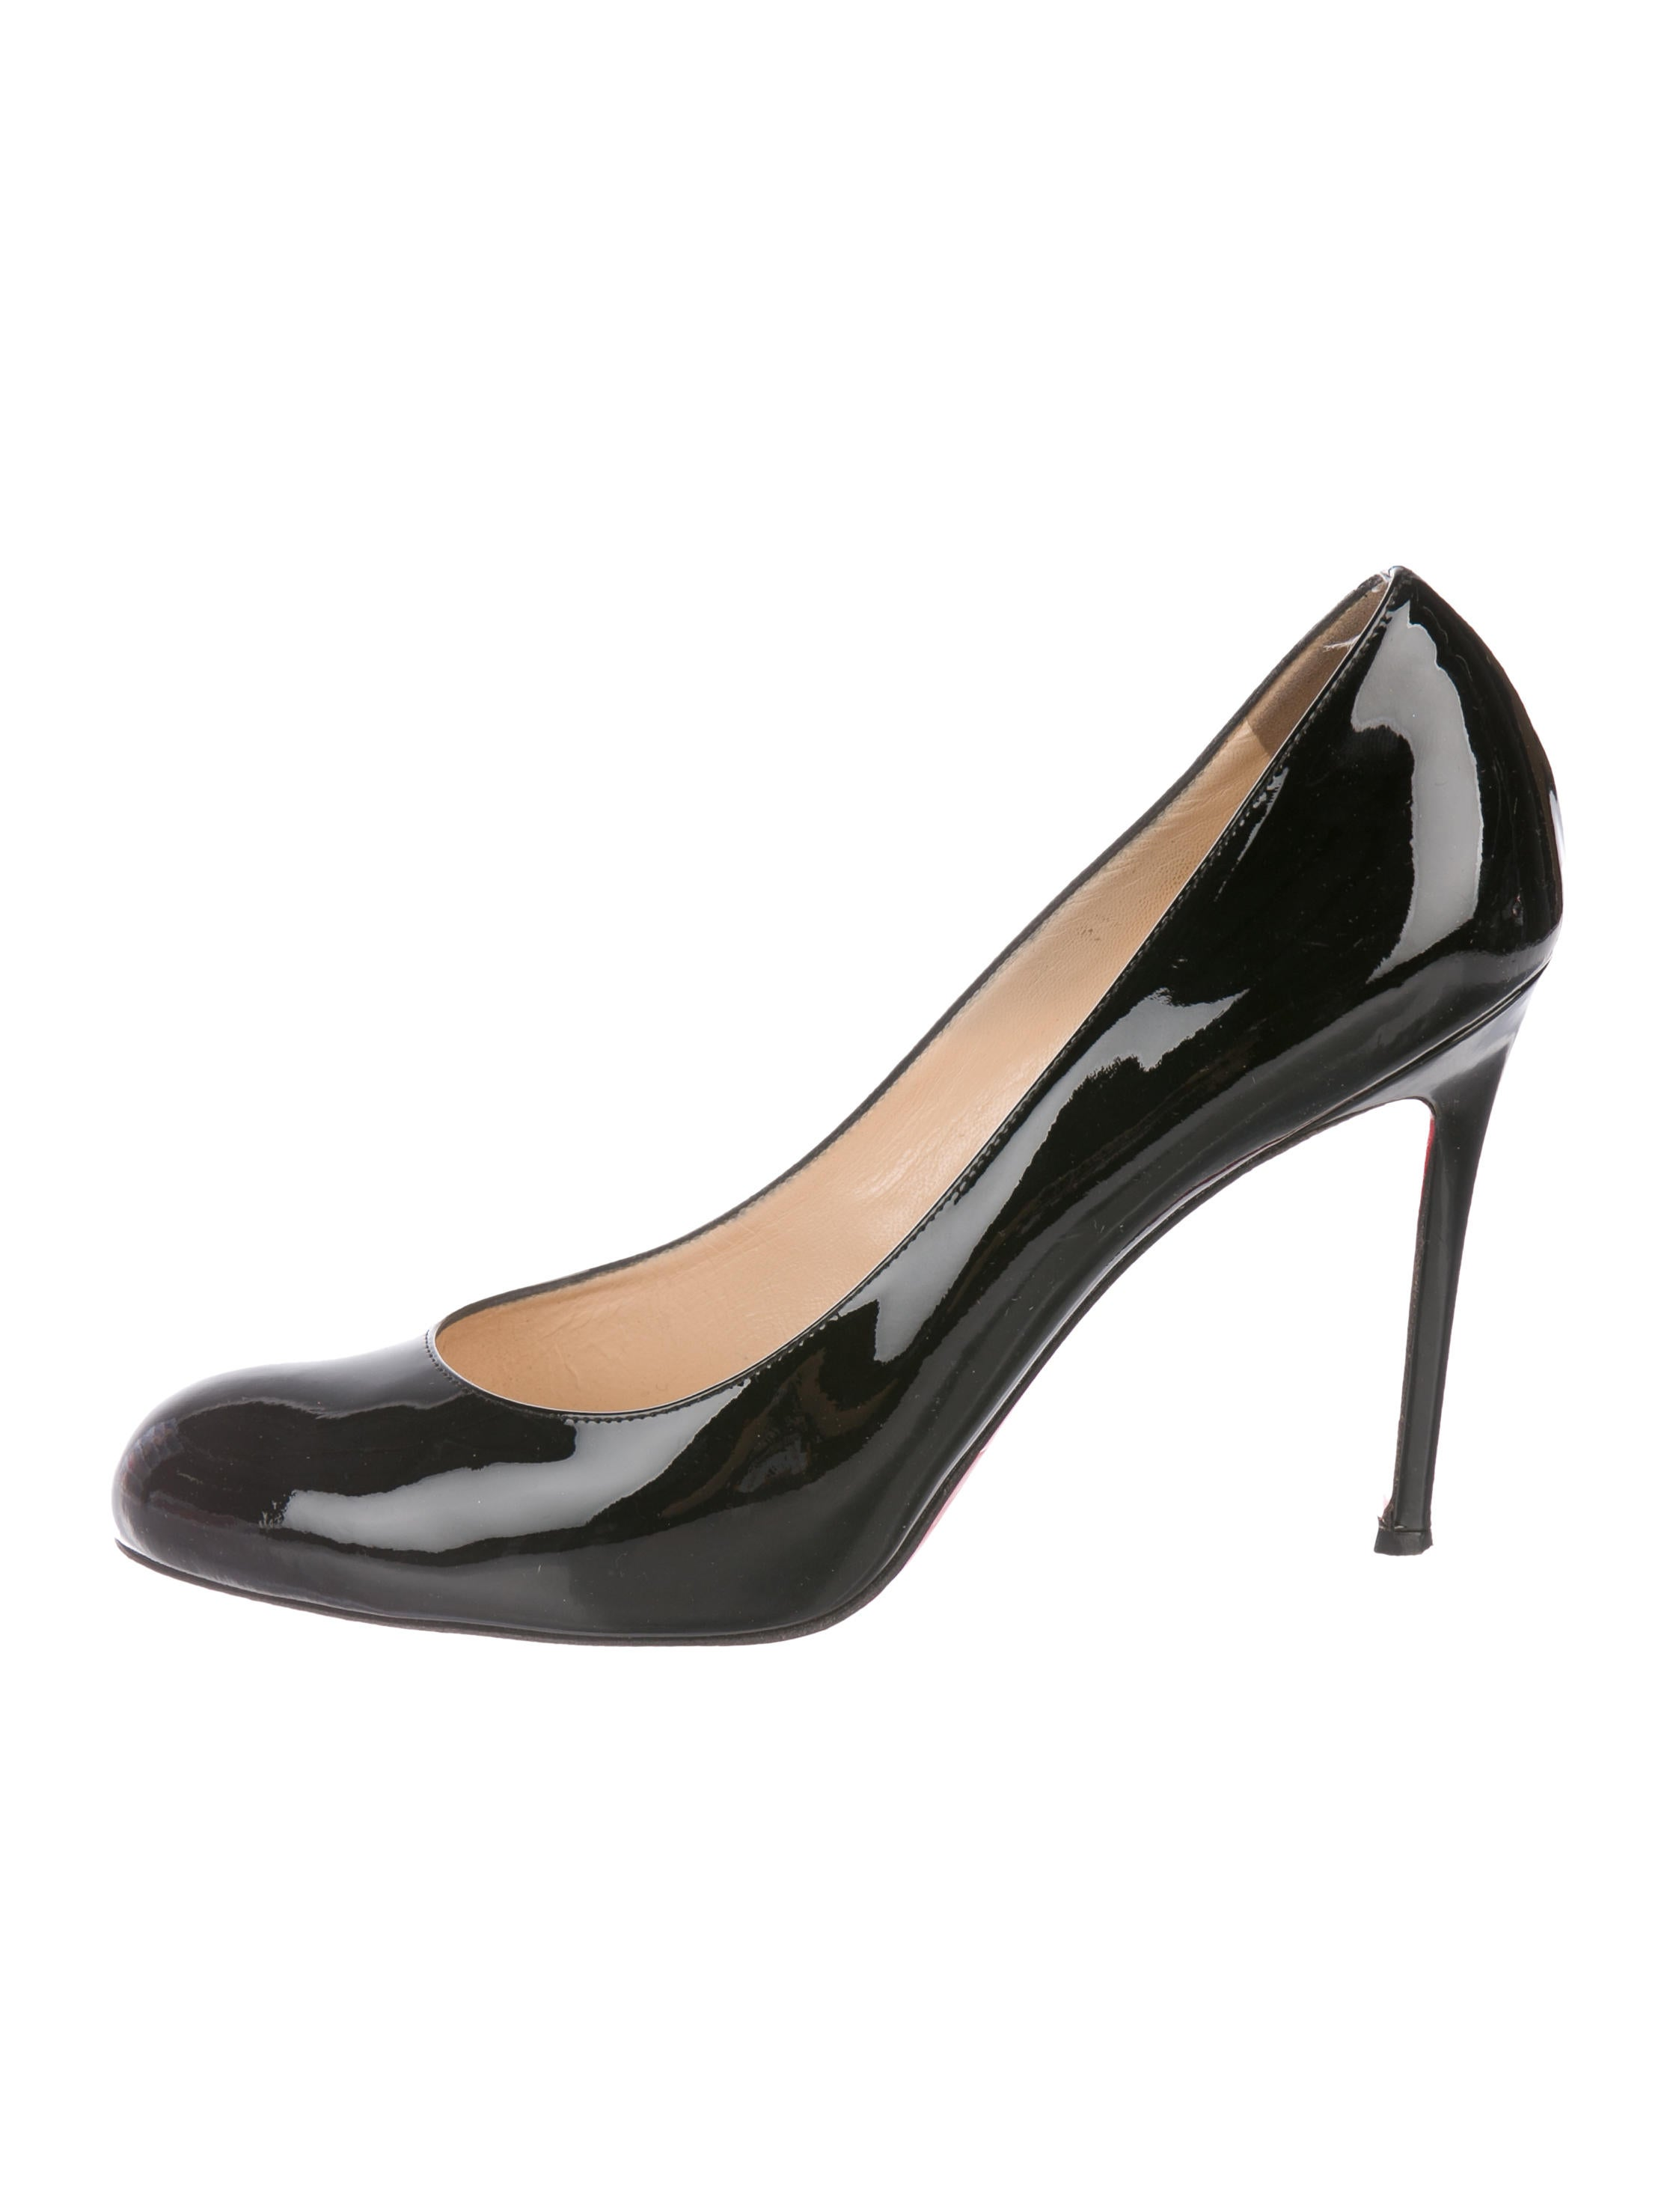 33d4b92754bc Christian Louboutin Patent Leather Round-Toe Pumps - Shoes ...